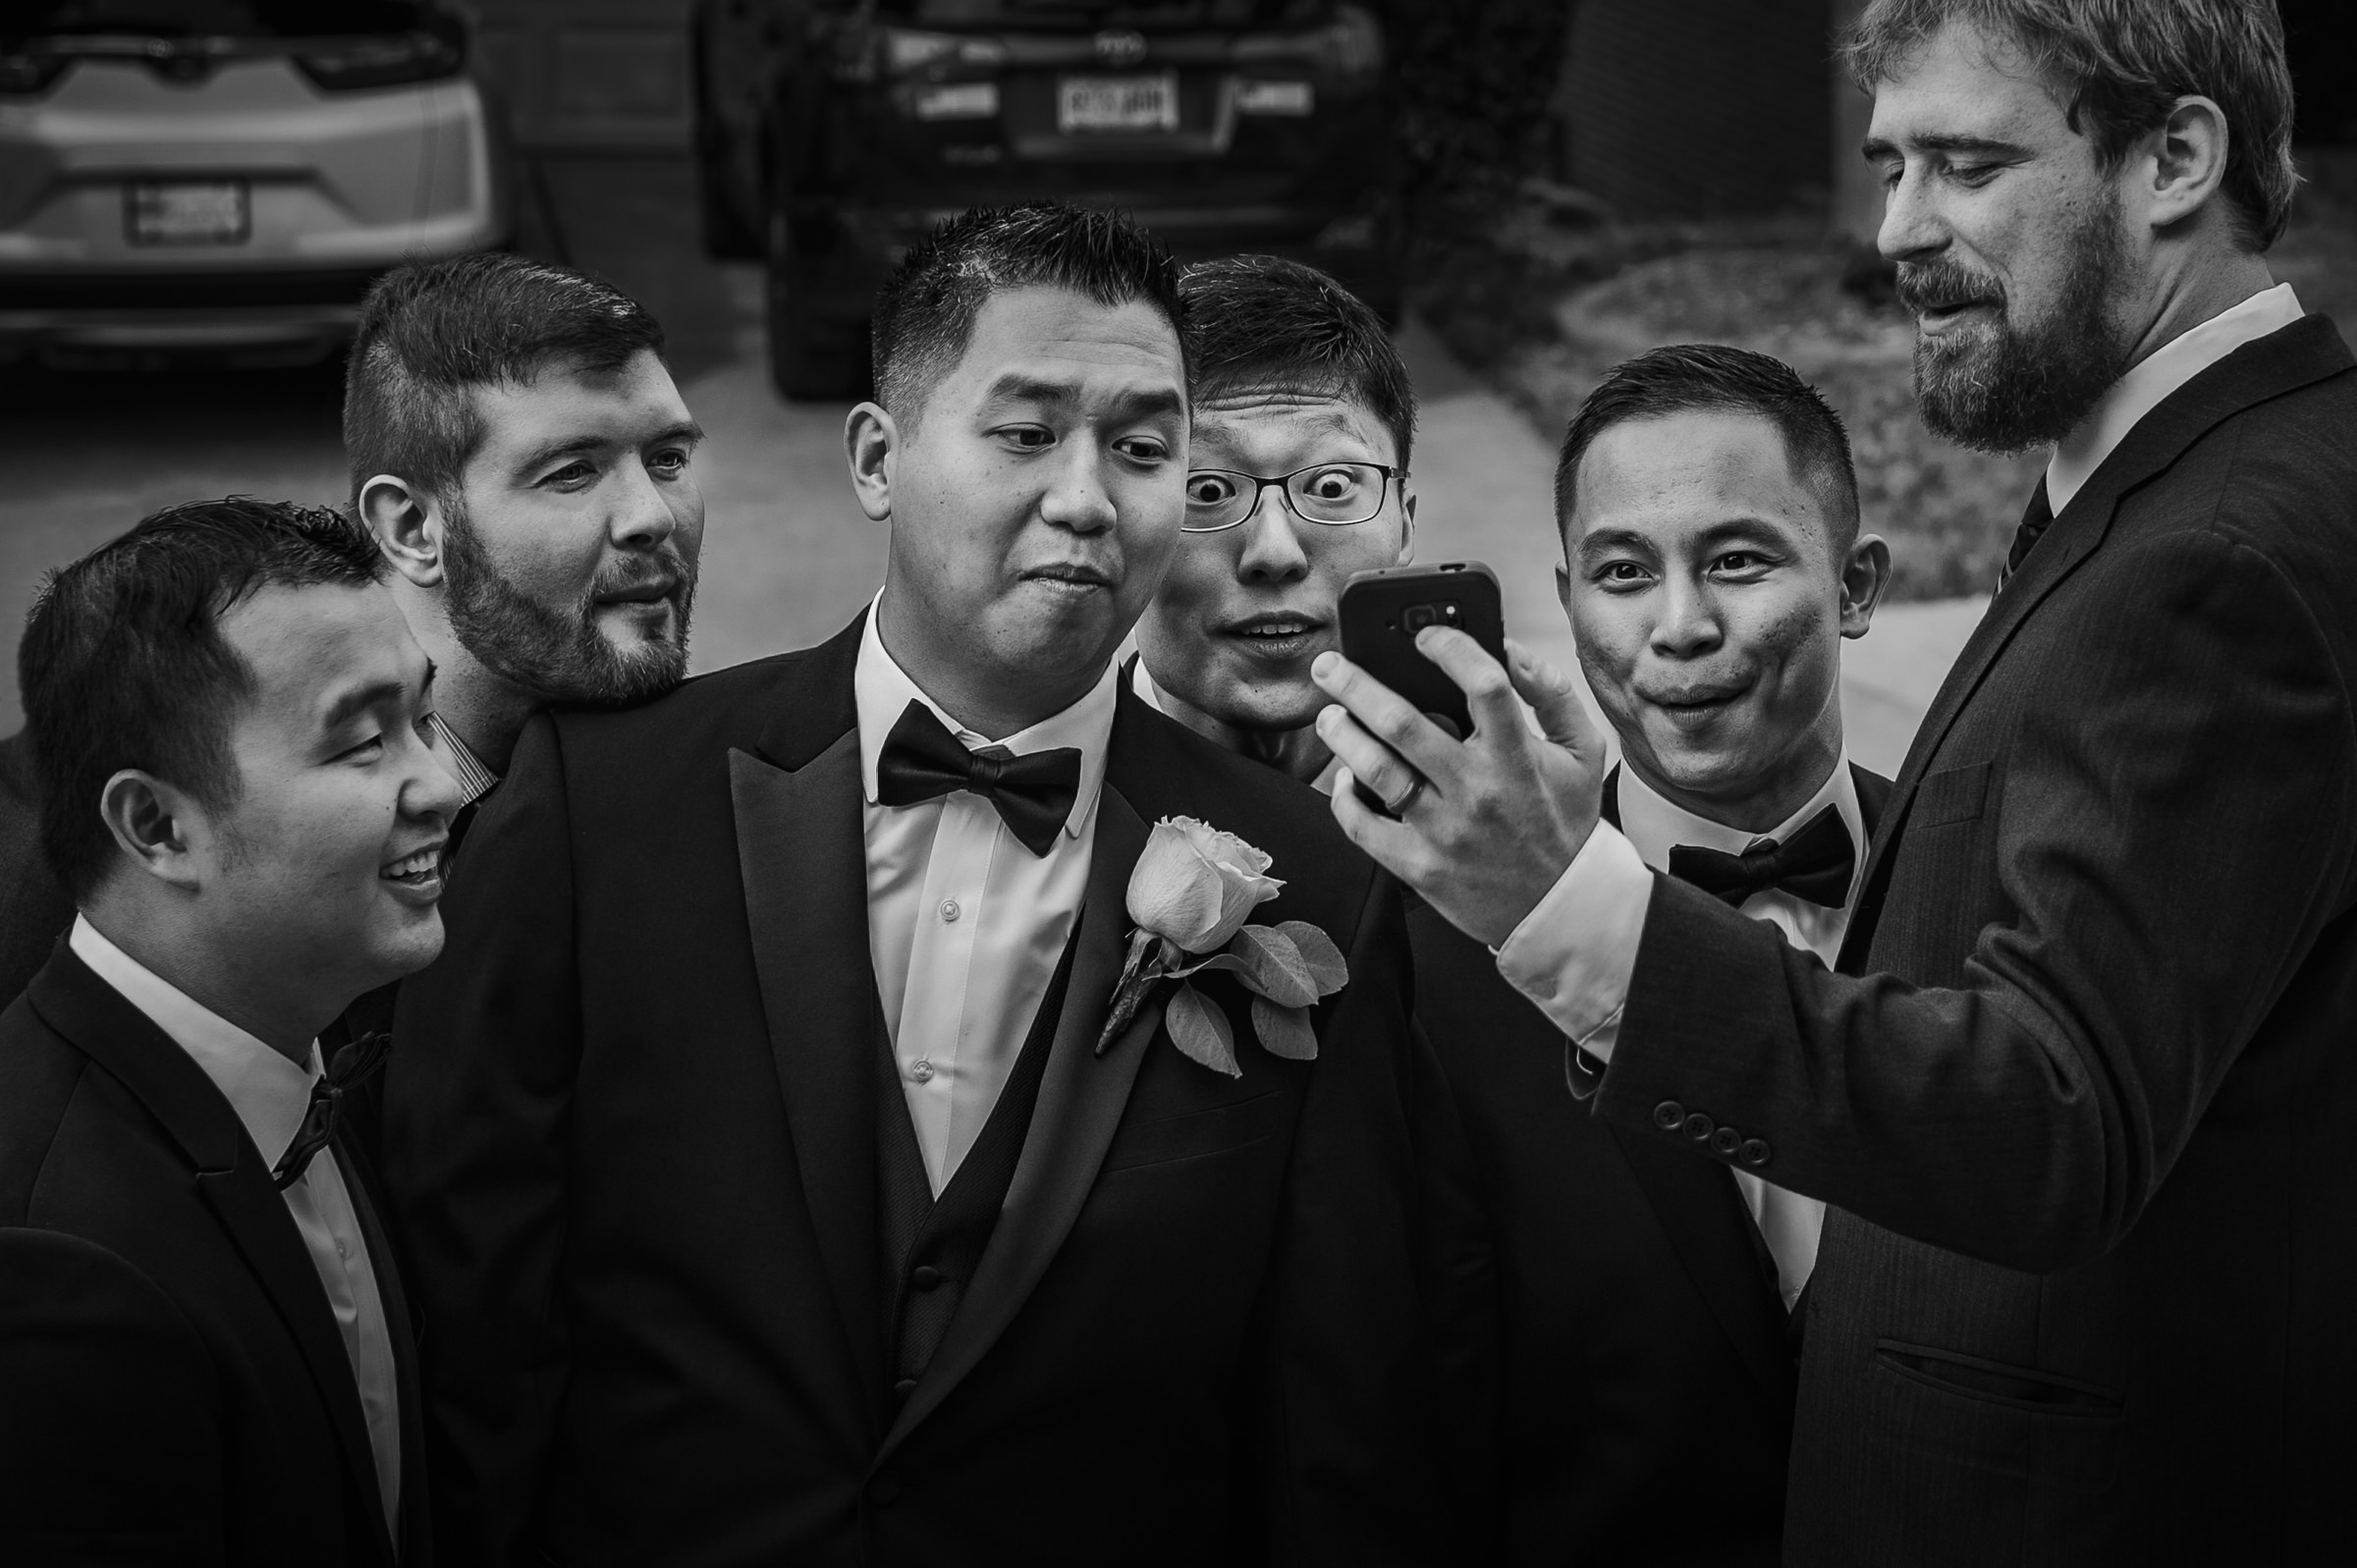 groom-and-groomsmen-peering-at-phone-viridian-images-photography